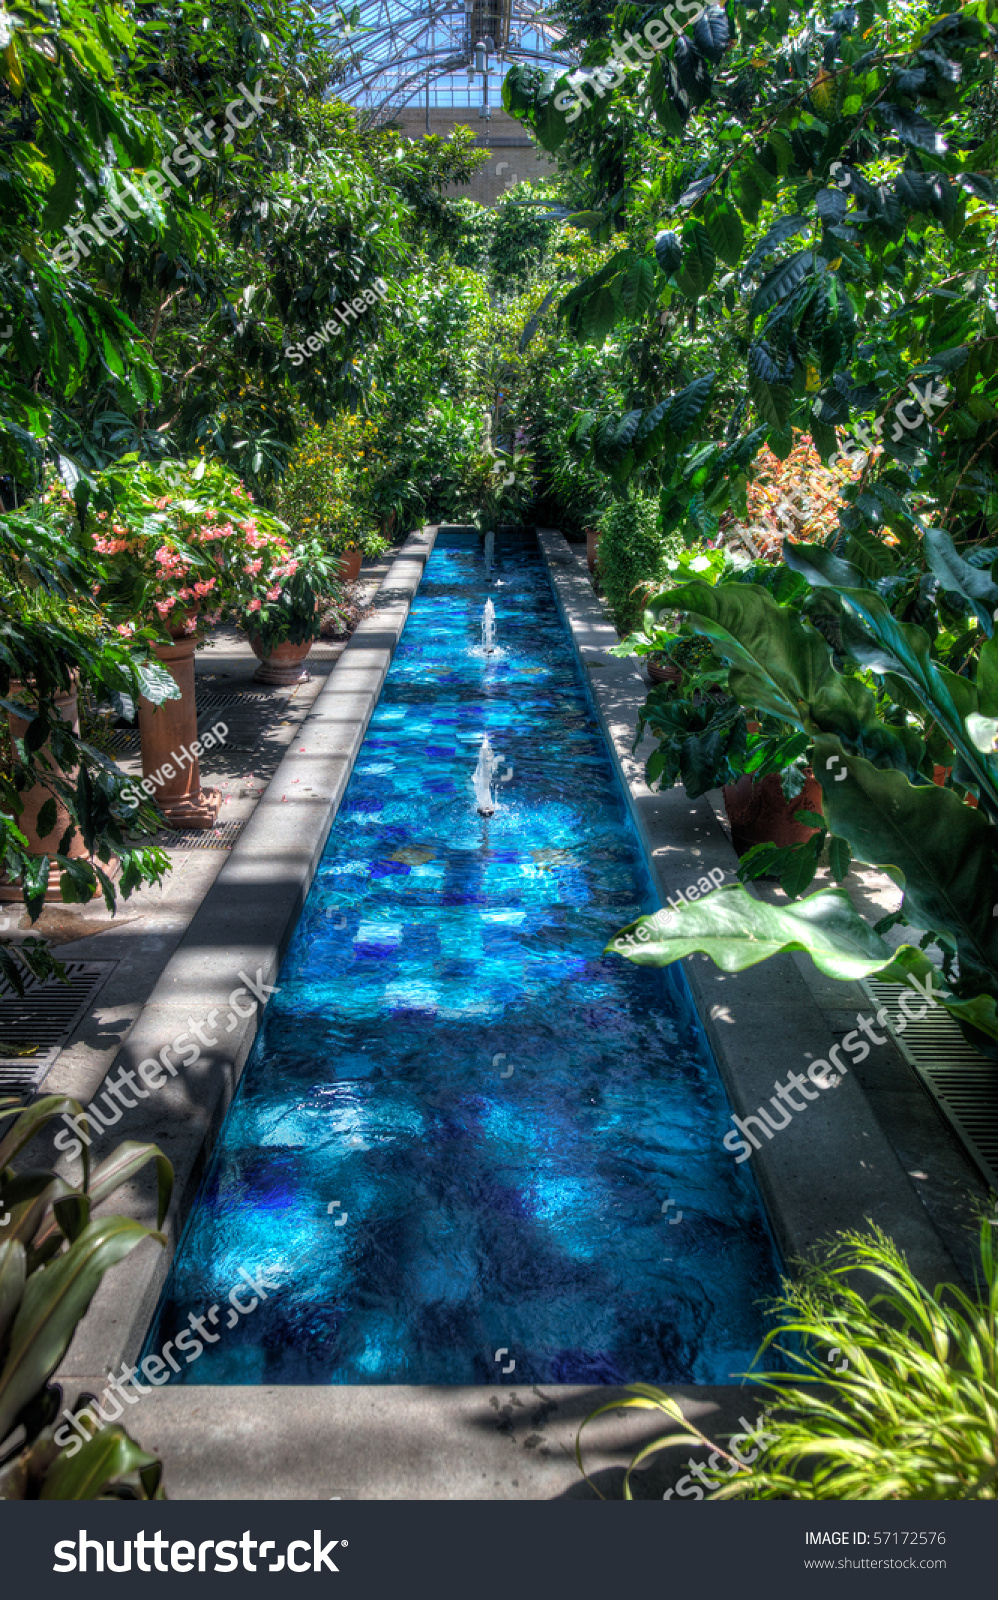 Blue Pool Among Bright Plants And Flowers Taken In Hdr In A Greenhouse Or Conservatory Stock